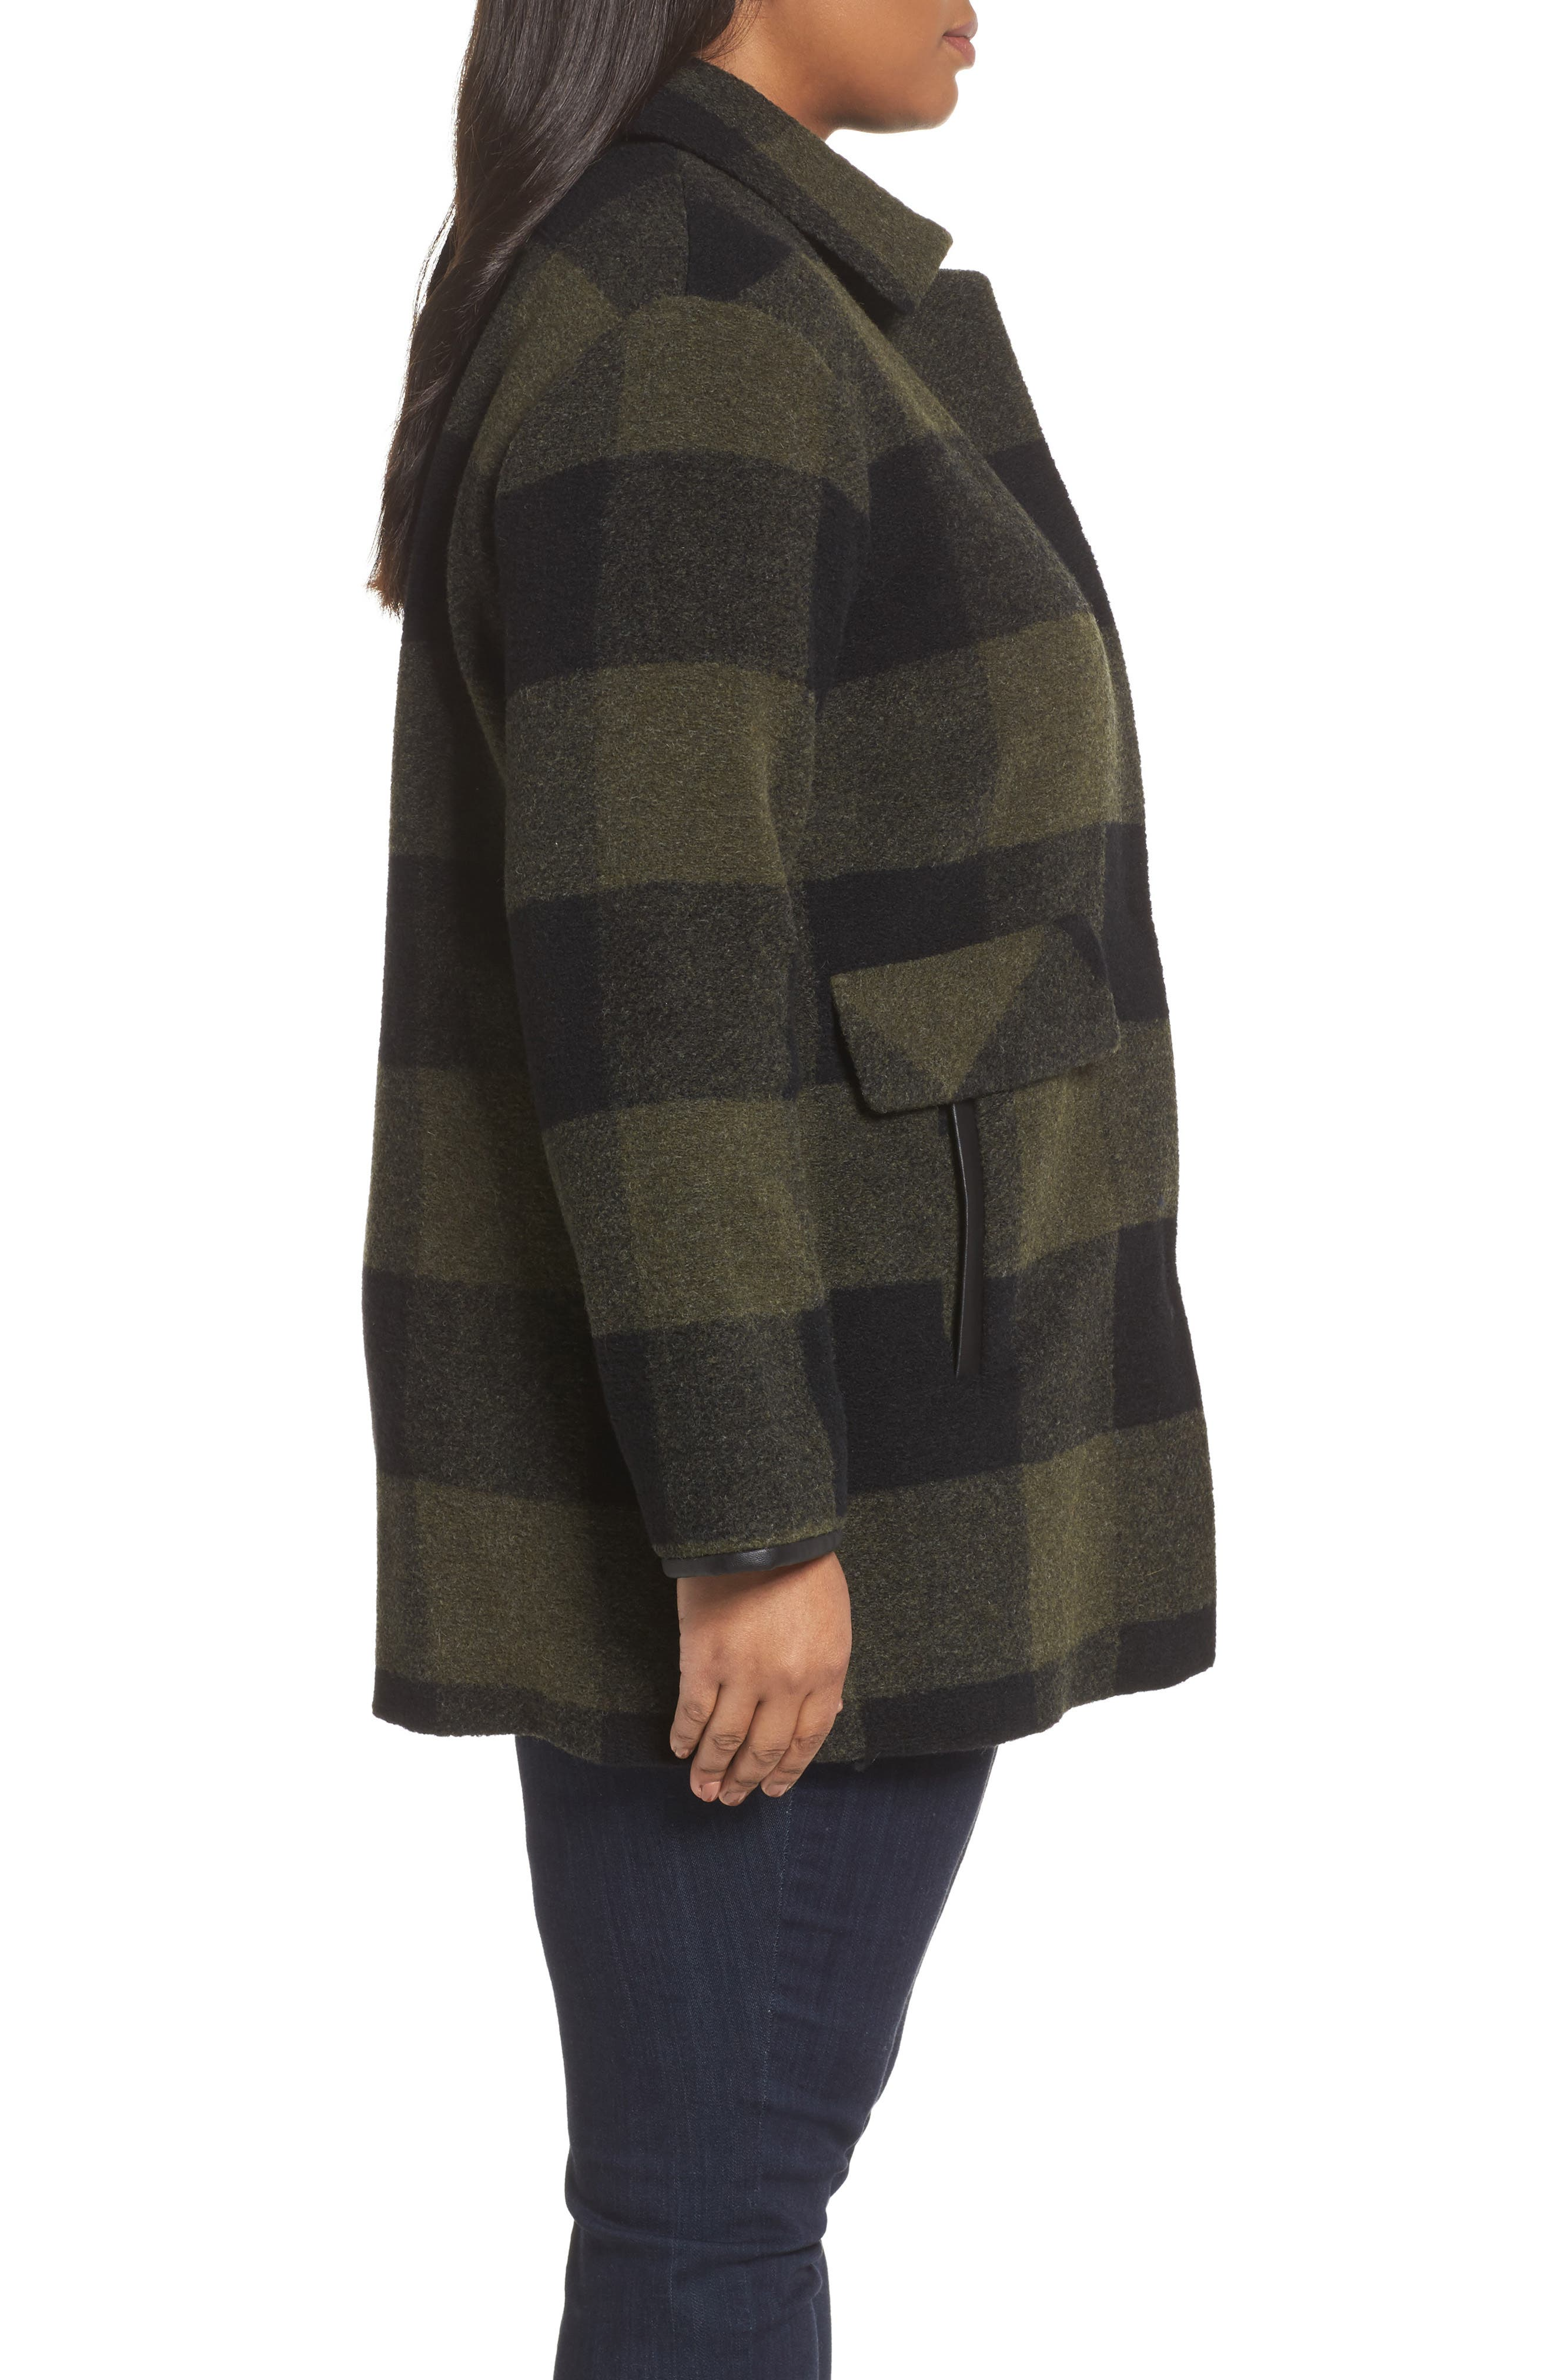 Paul Bunyan Plaid Wool Blend Barn Coat,                             Alternate thumbnail 5, color,